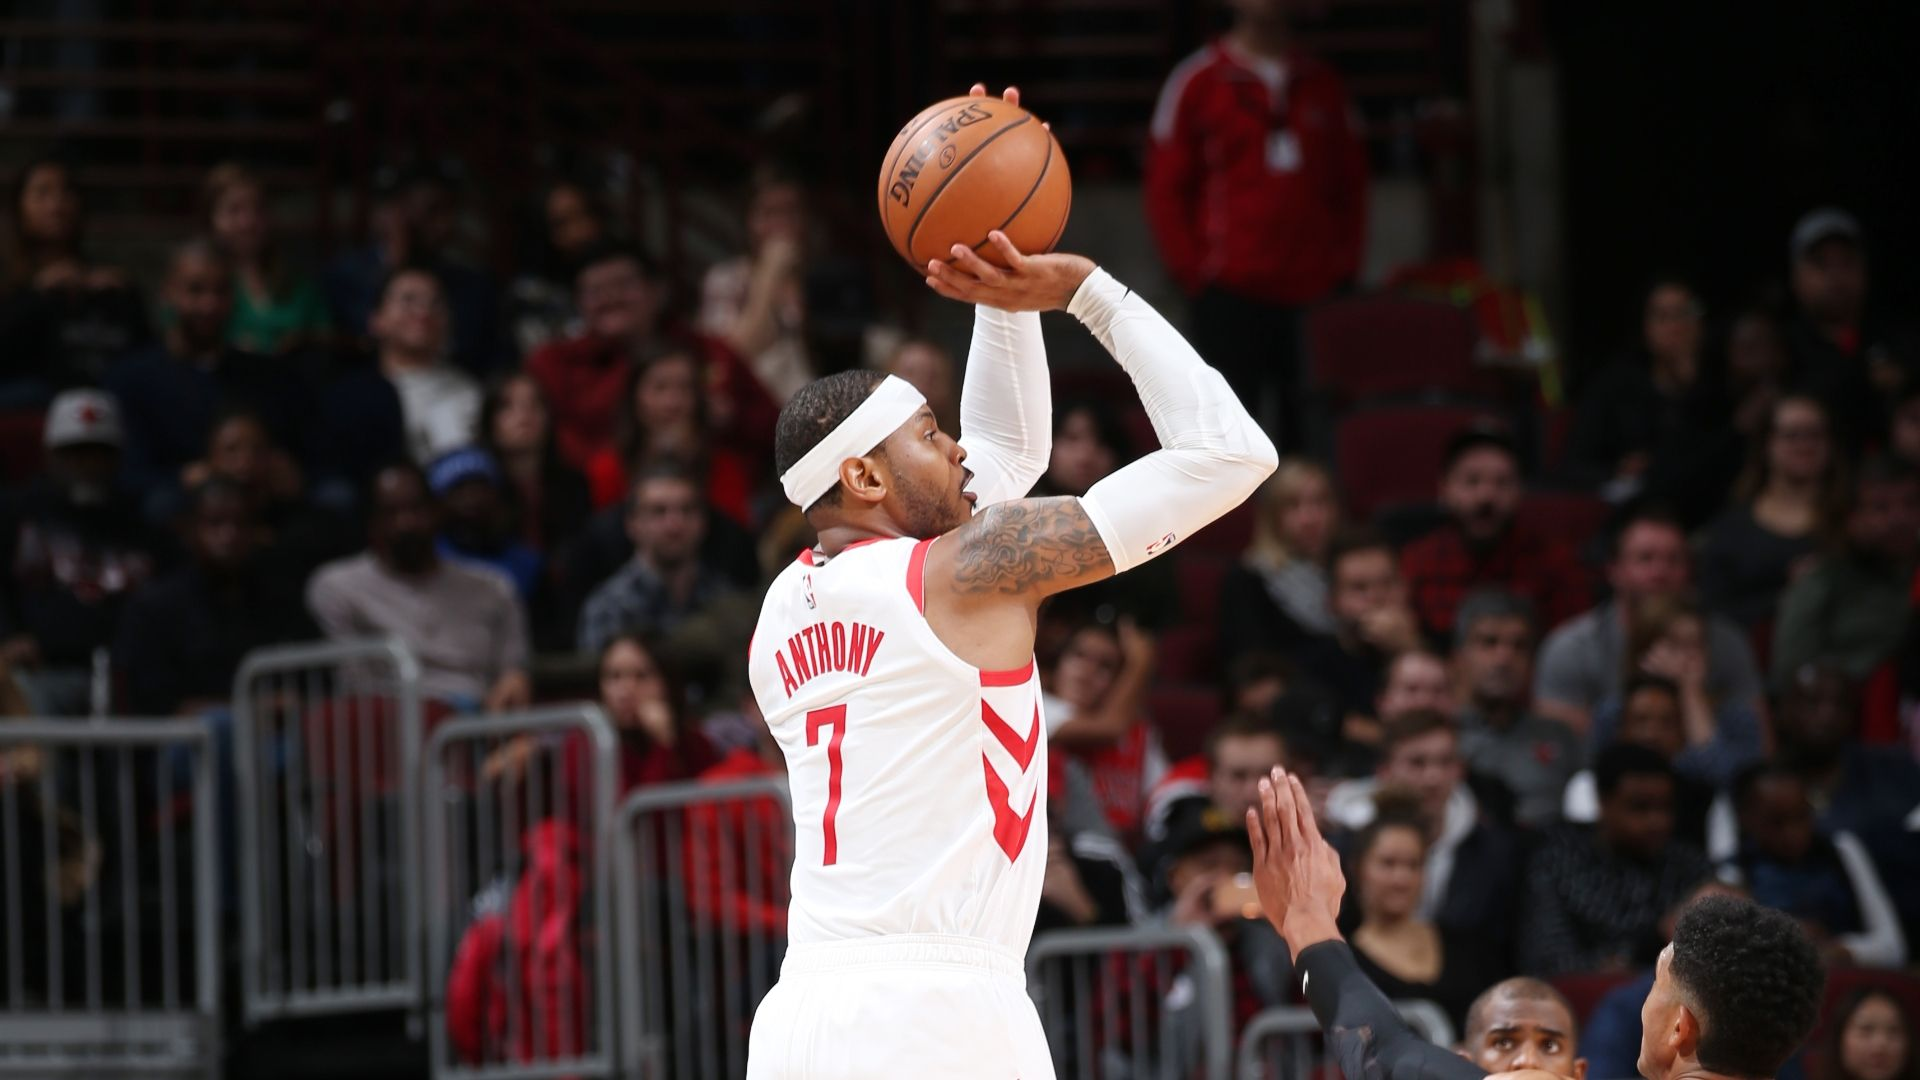 Gutierrez: Public's expectations for Melo were too high